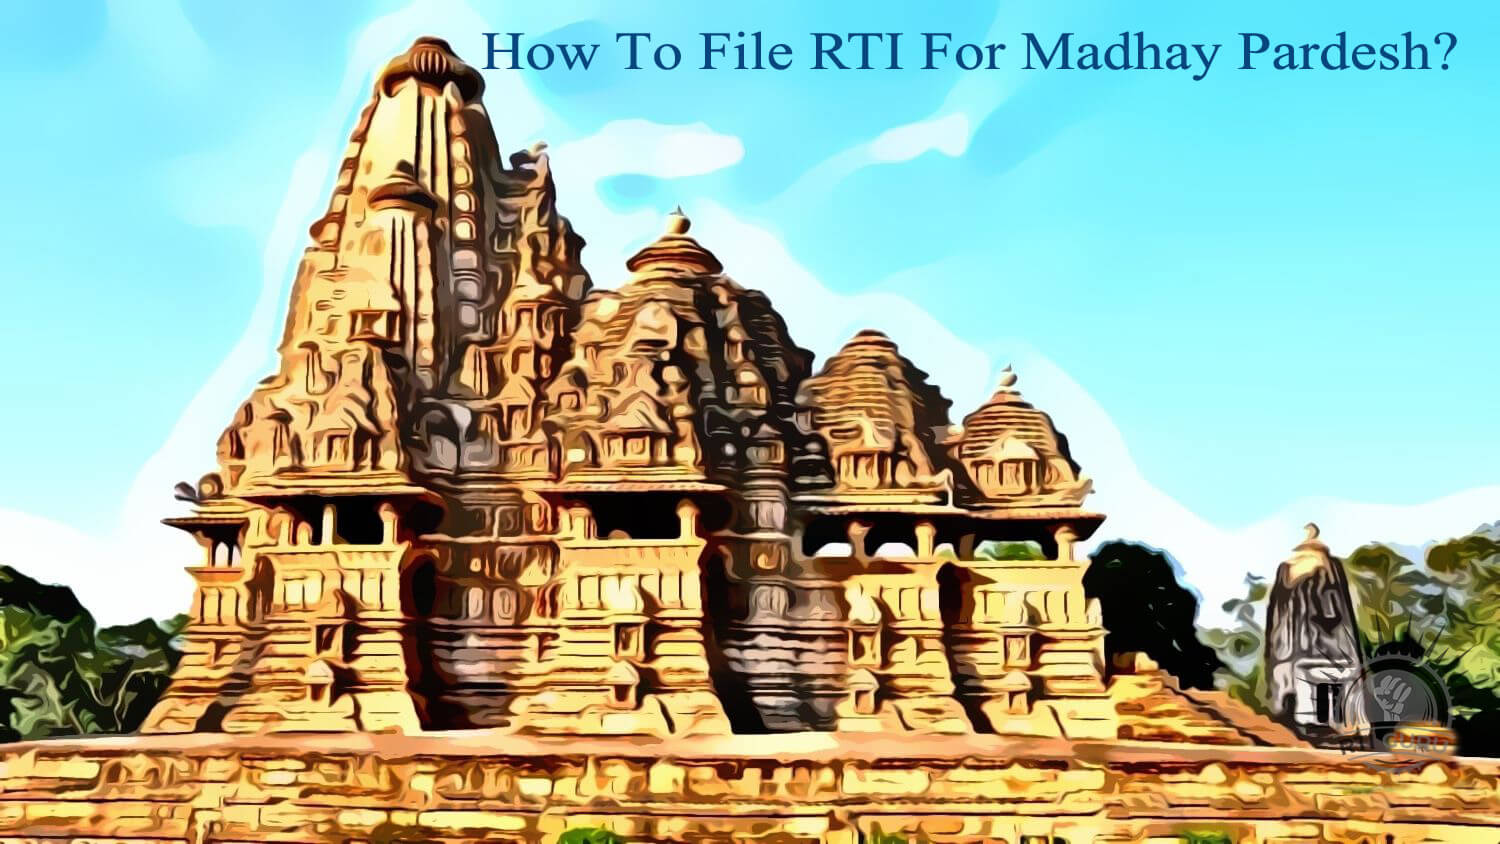 how to file rti for madhya pradesh?